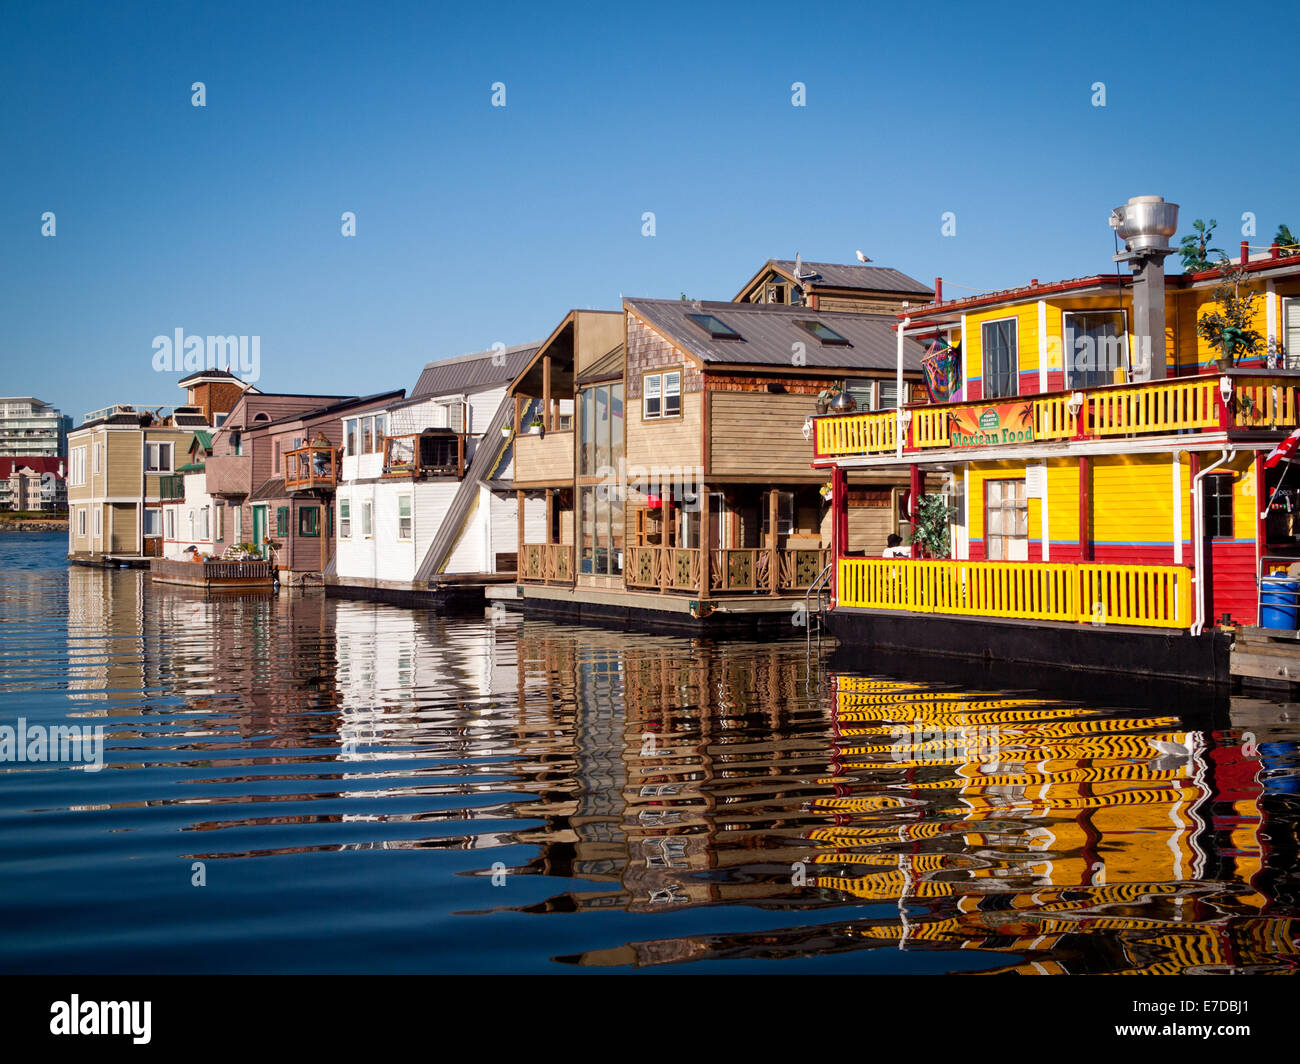 A view of colourful houseboats and businesses at quaint Fisherman's Wharf in Victoria, British Columbia, Canada. Stock Photo